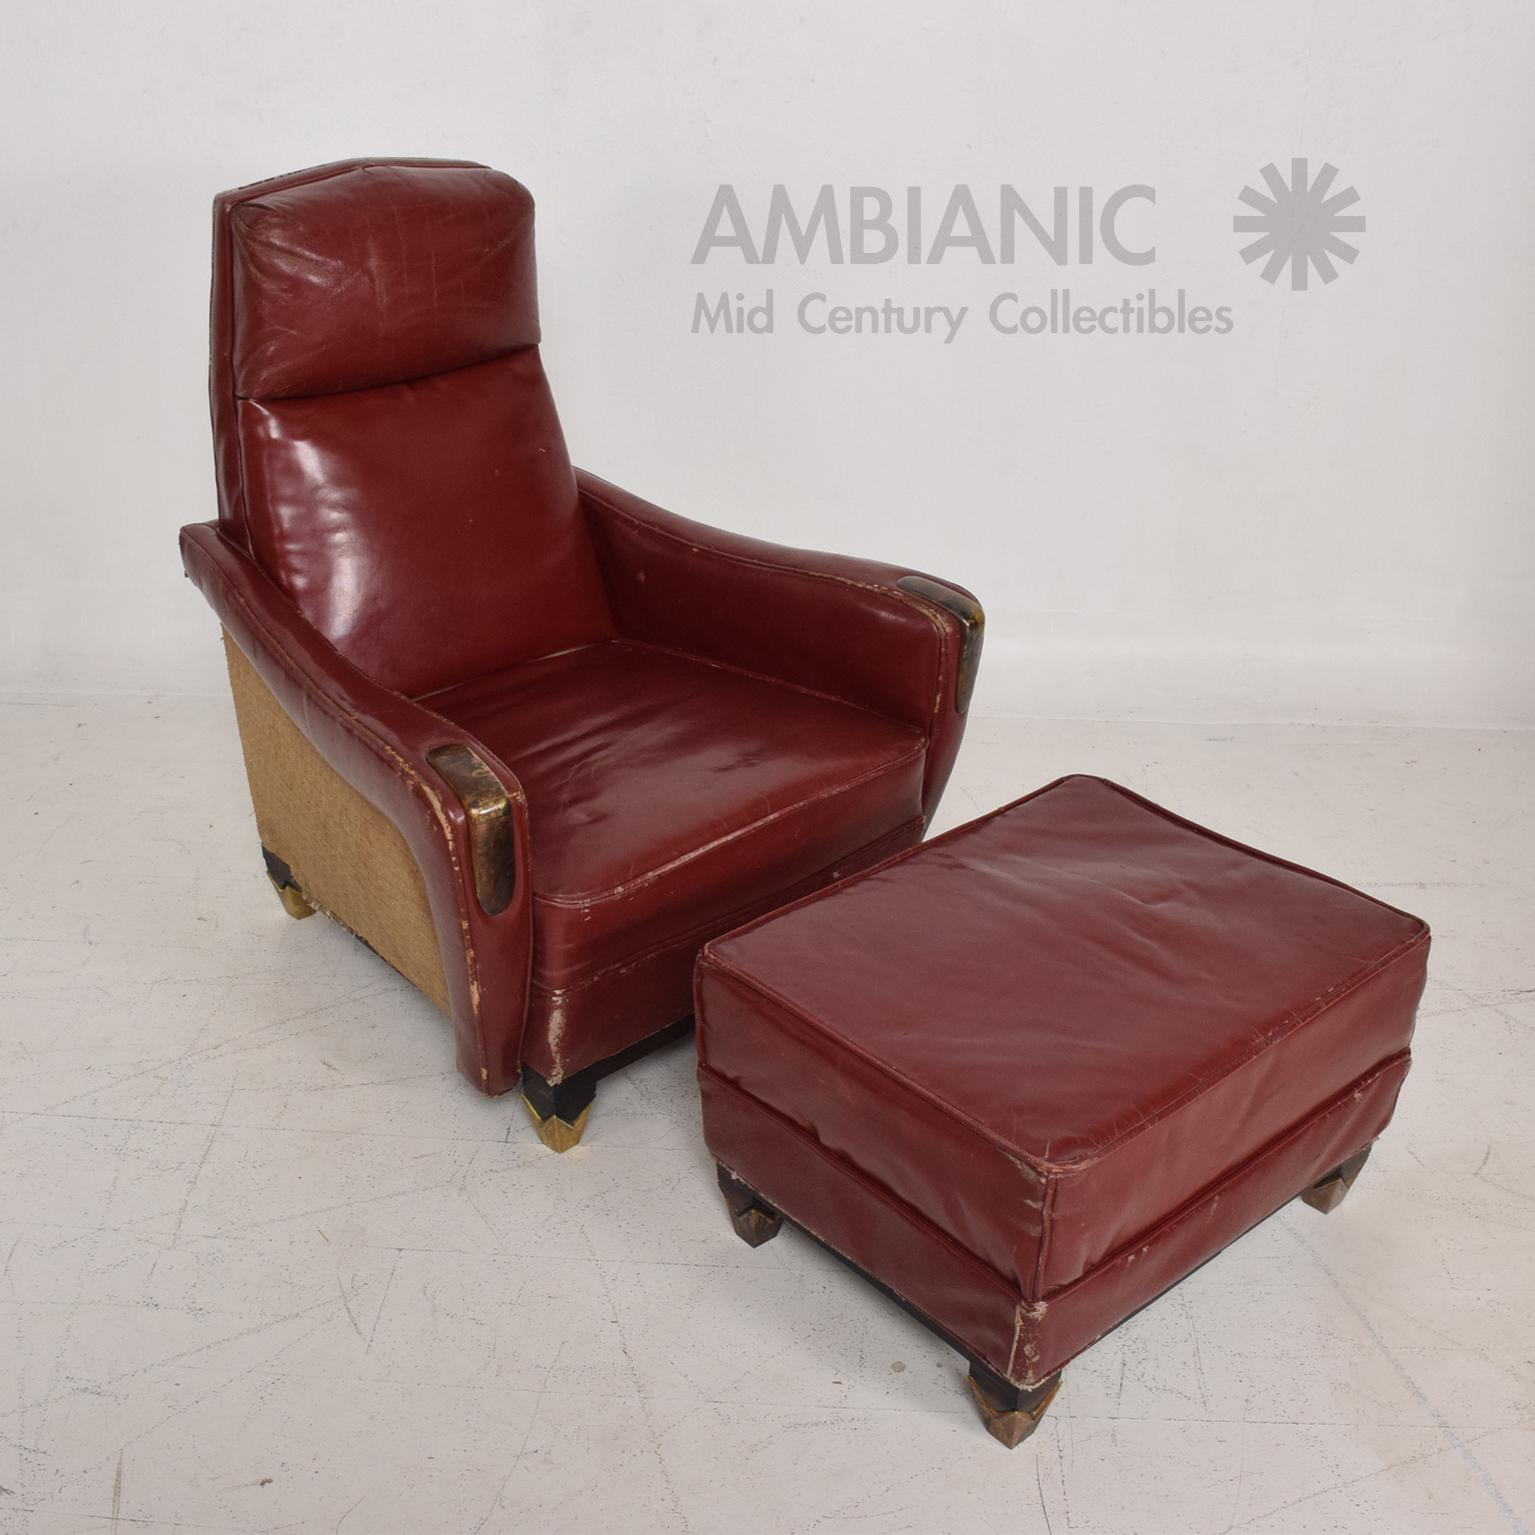 Luxury Mexican Modernist Tall Club Chair Ottoman Red Leather Brass